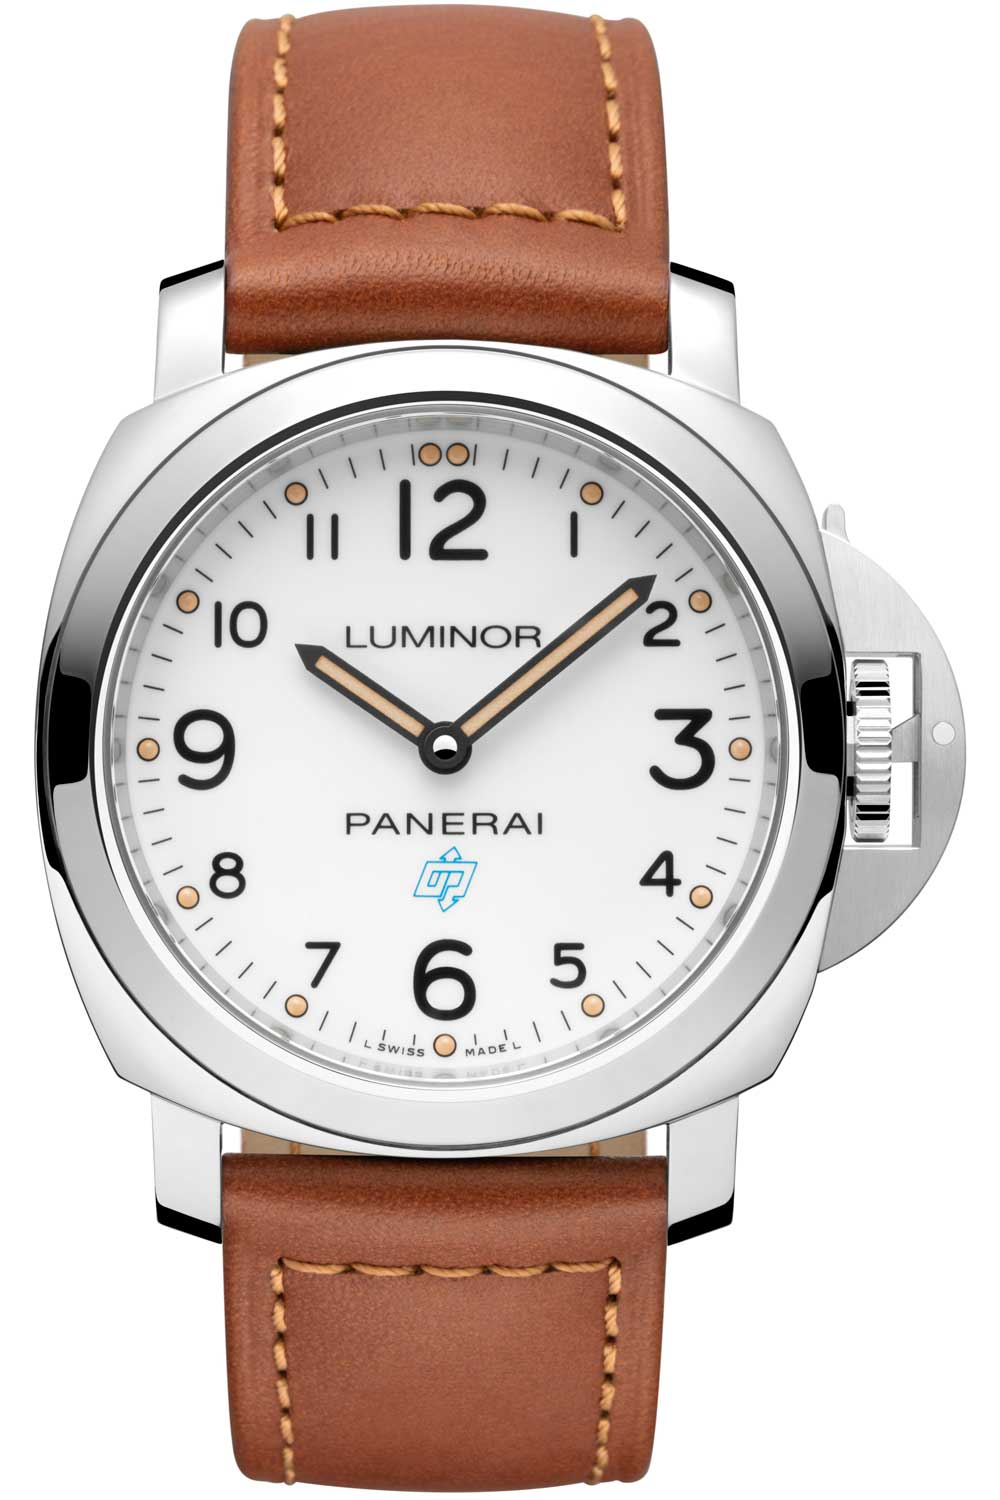 """The PAM775 features the throwback """"OP"""" logo from Panerai's first publicly sold collection of watches."""